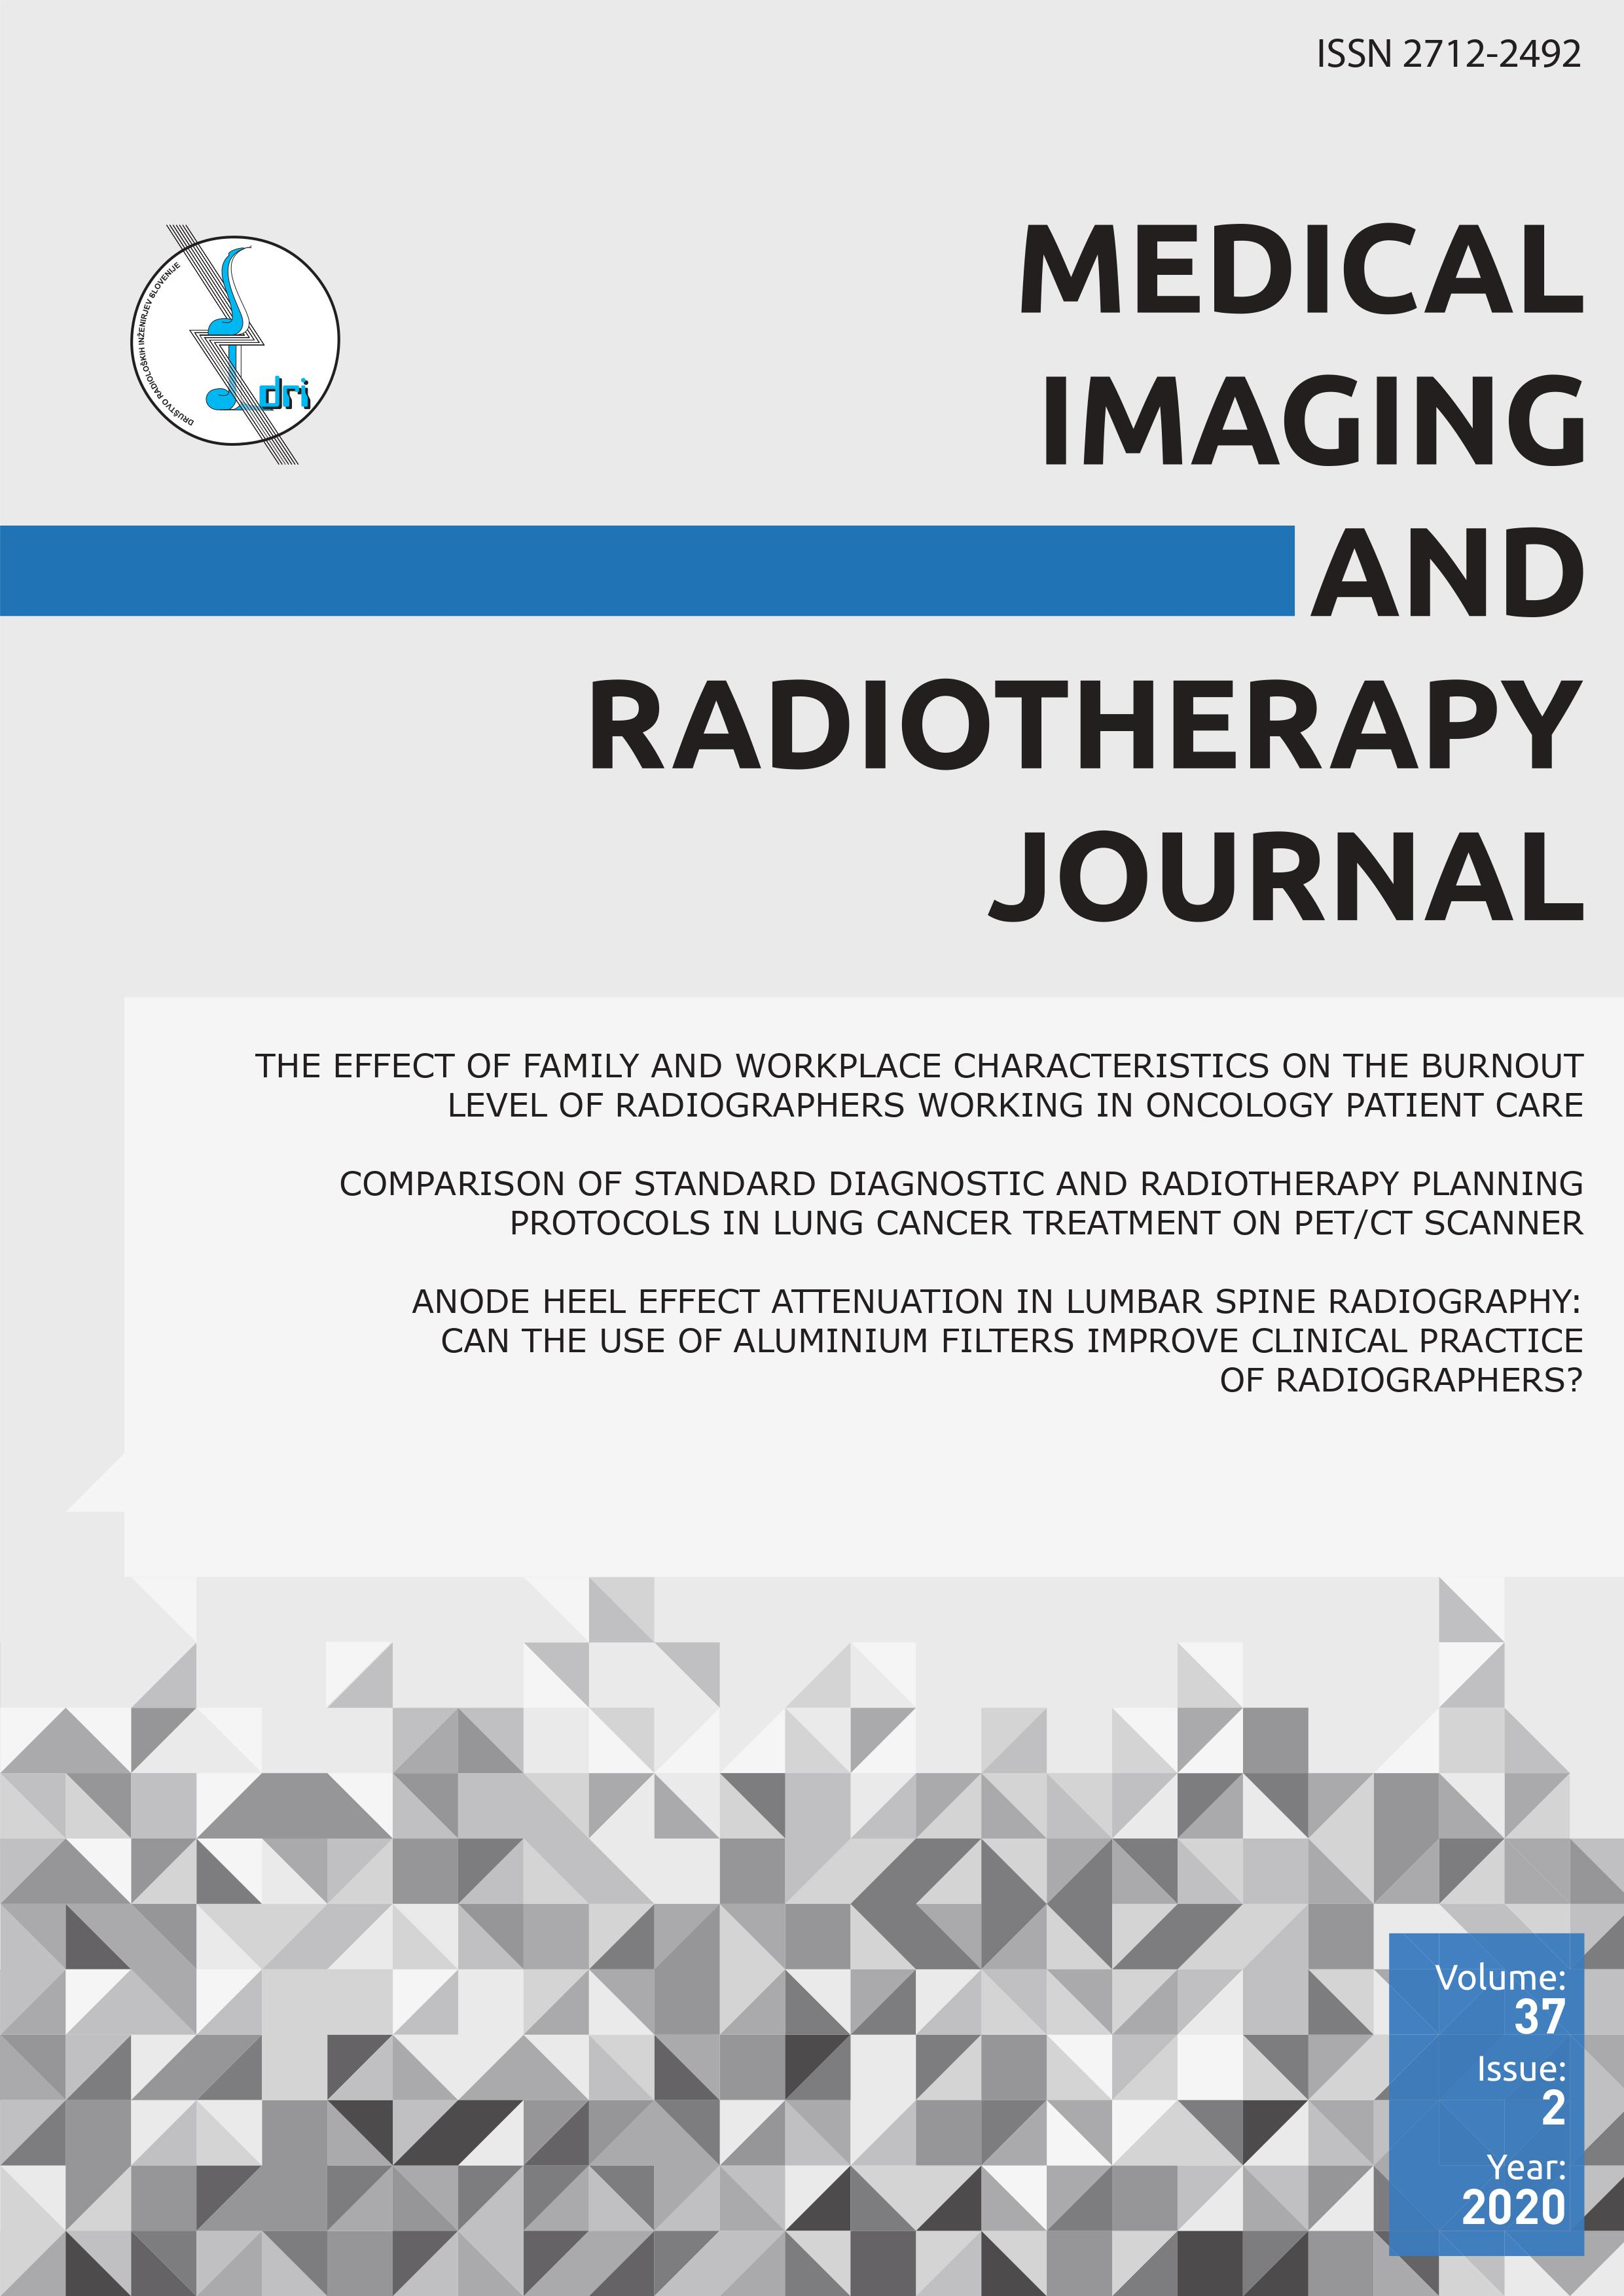 MIRTJ: volume 37, issue 2, year 2020 - MEDICAL IMAGING AND RADIOTHERAPY JOURNAL